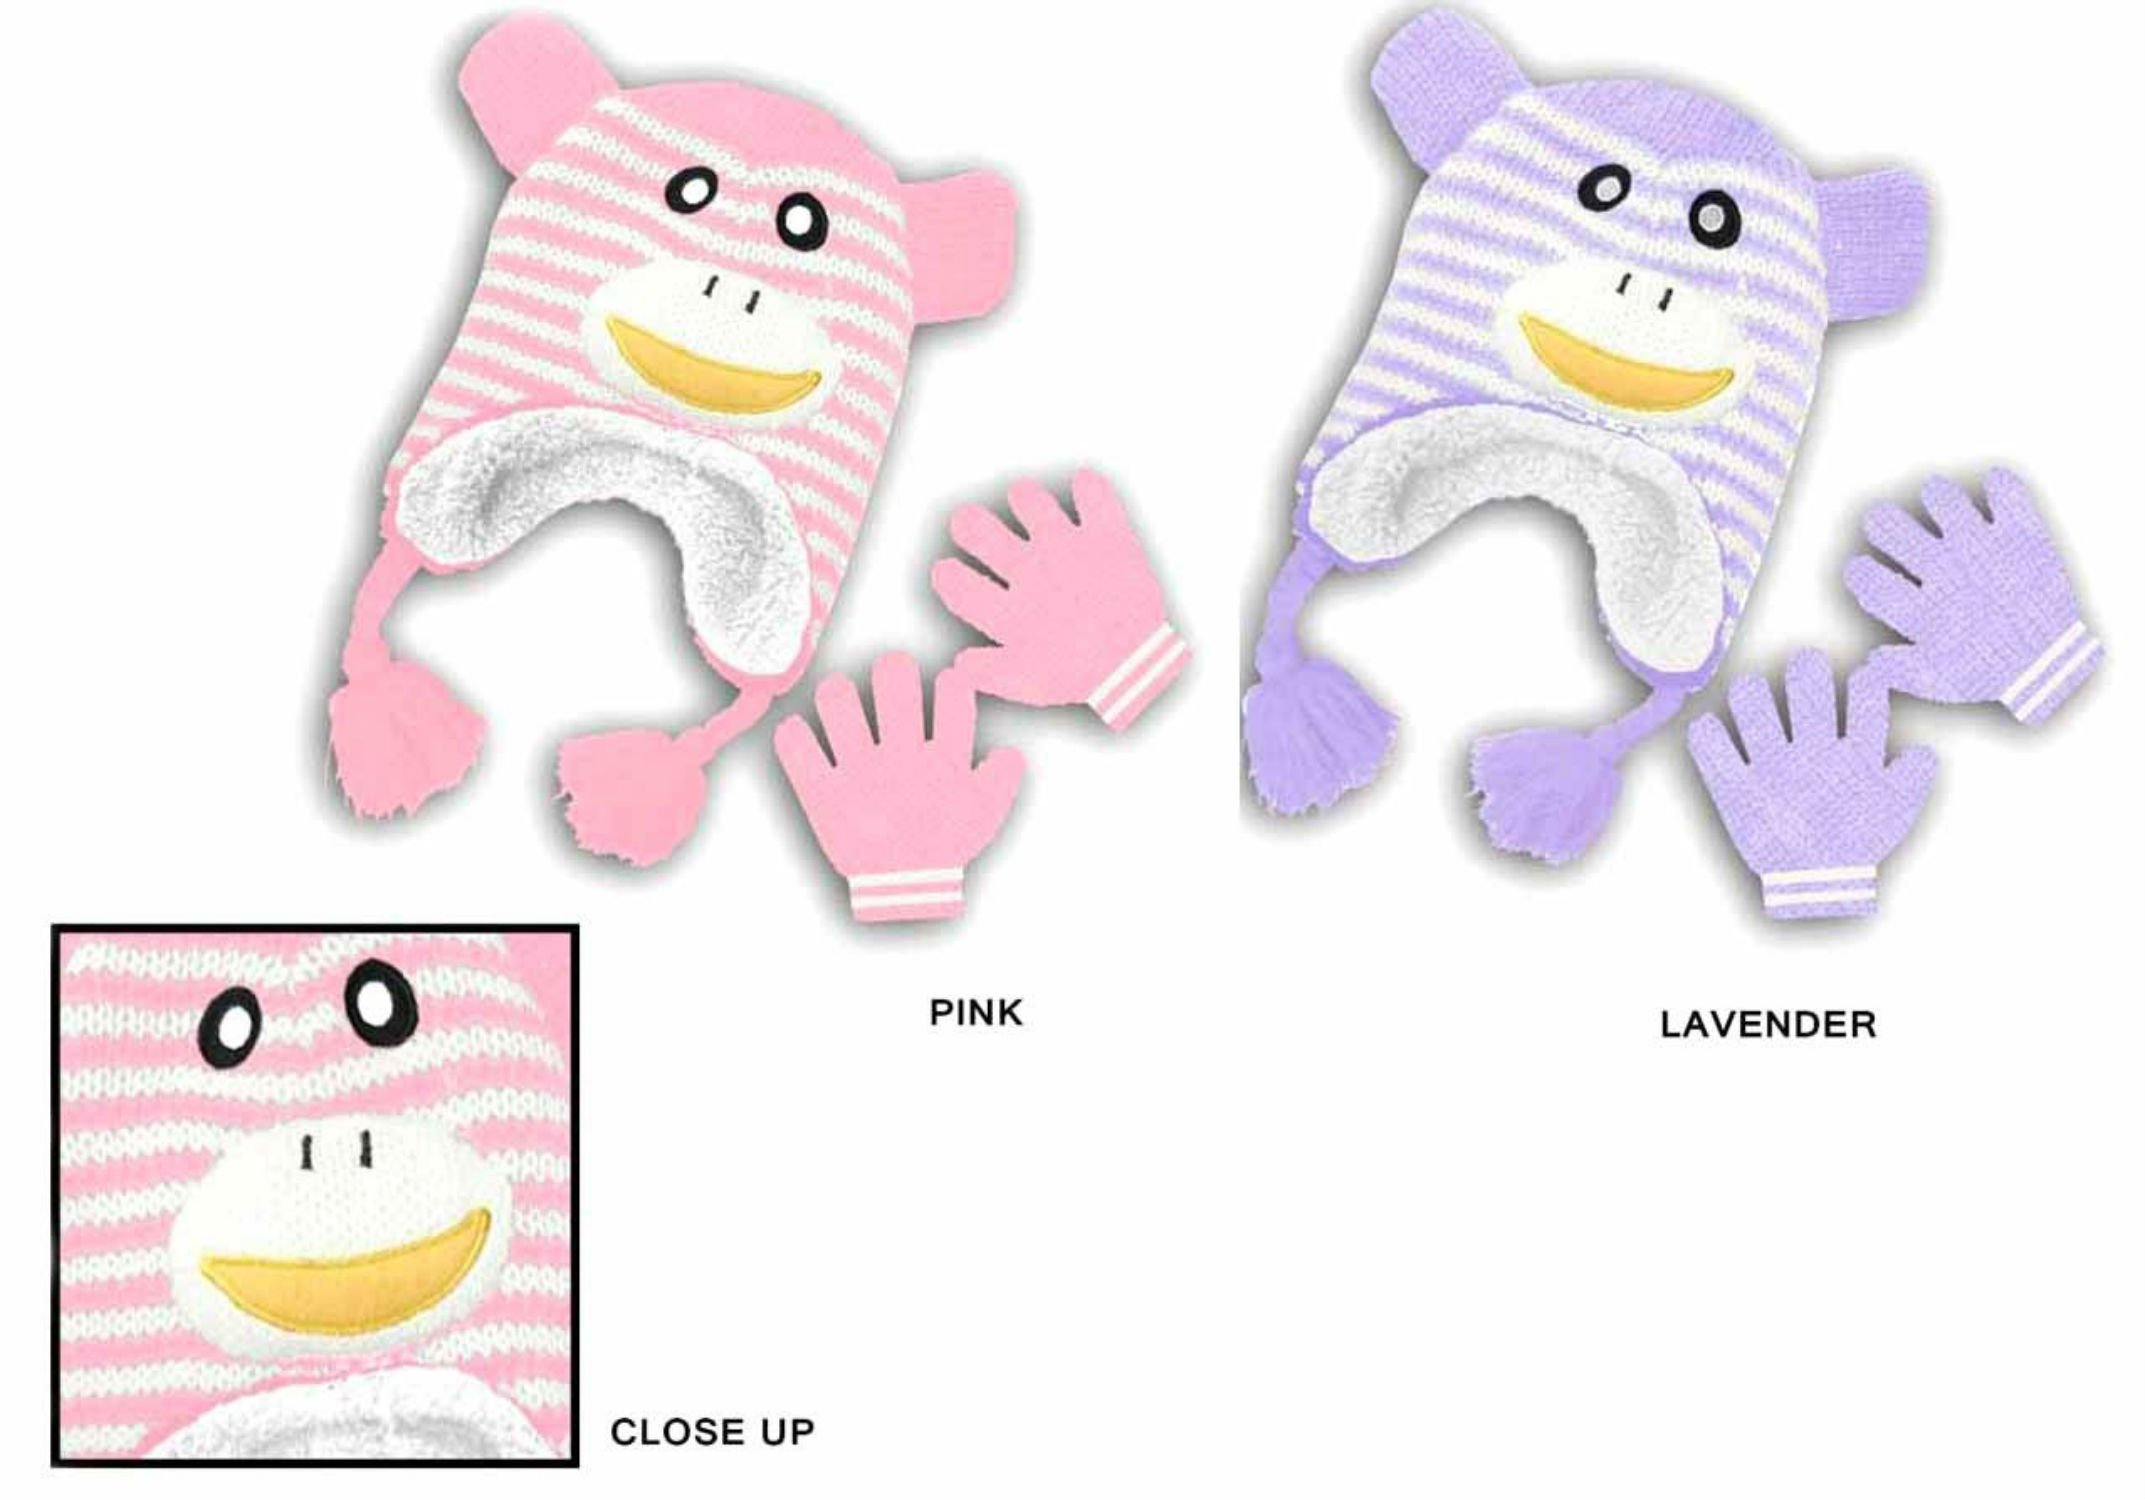 Baby Girl Kids Toddler Cute Fuzzy Gloves and Hat - Monkey Designs (Pink)